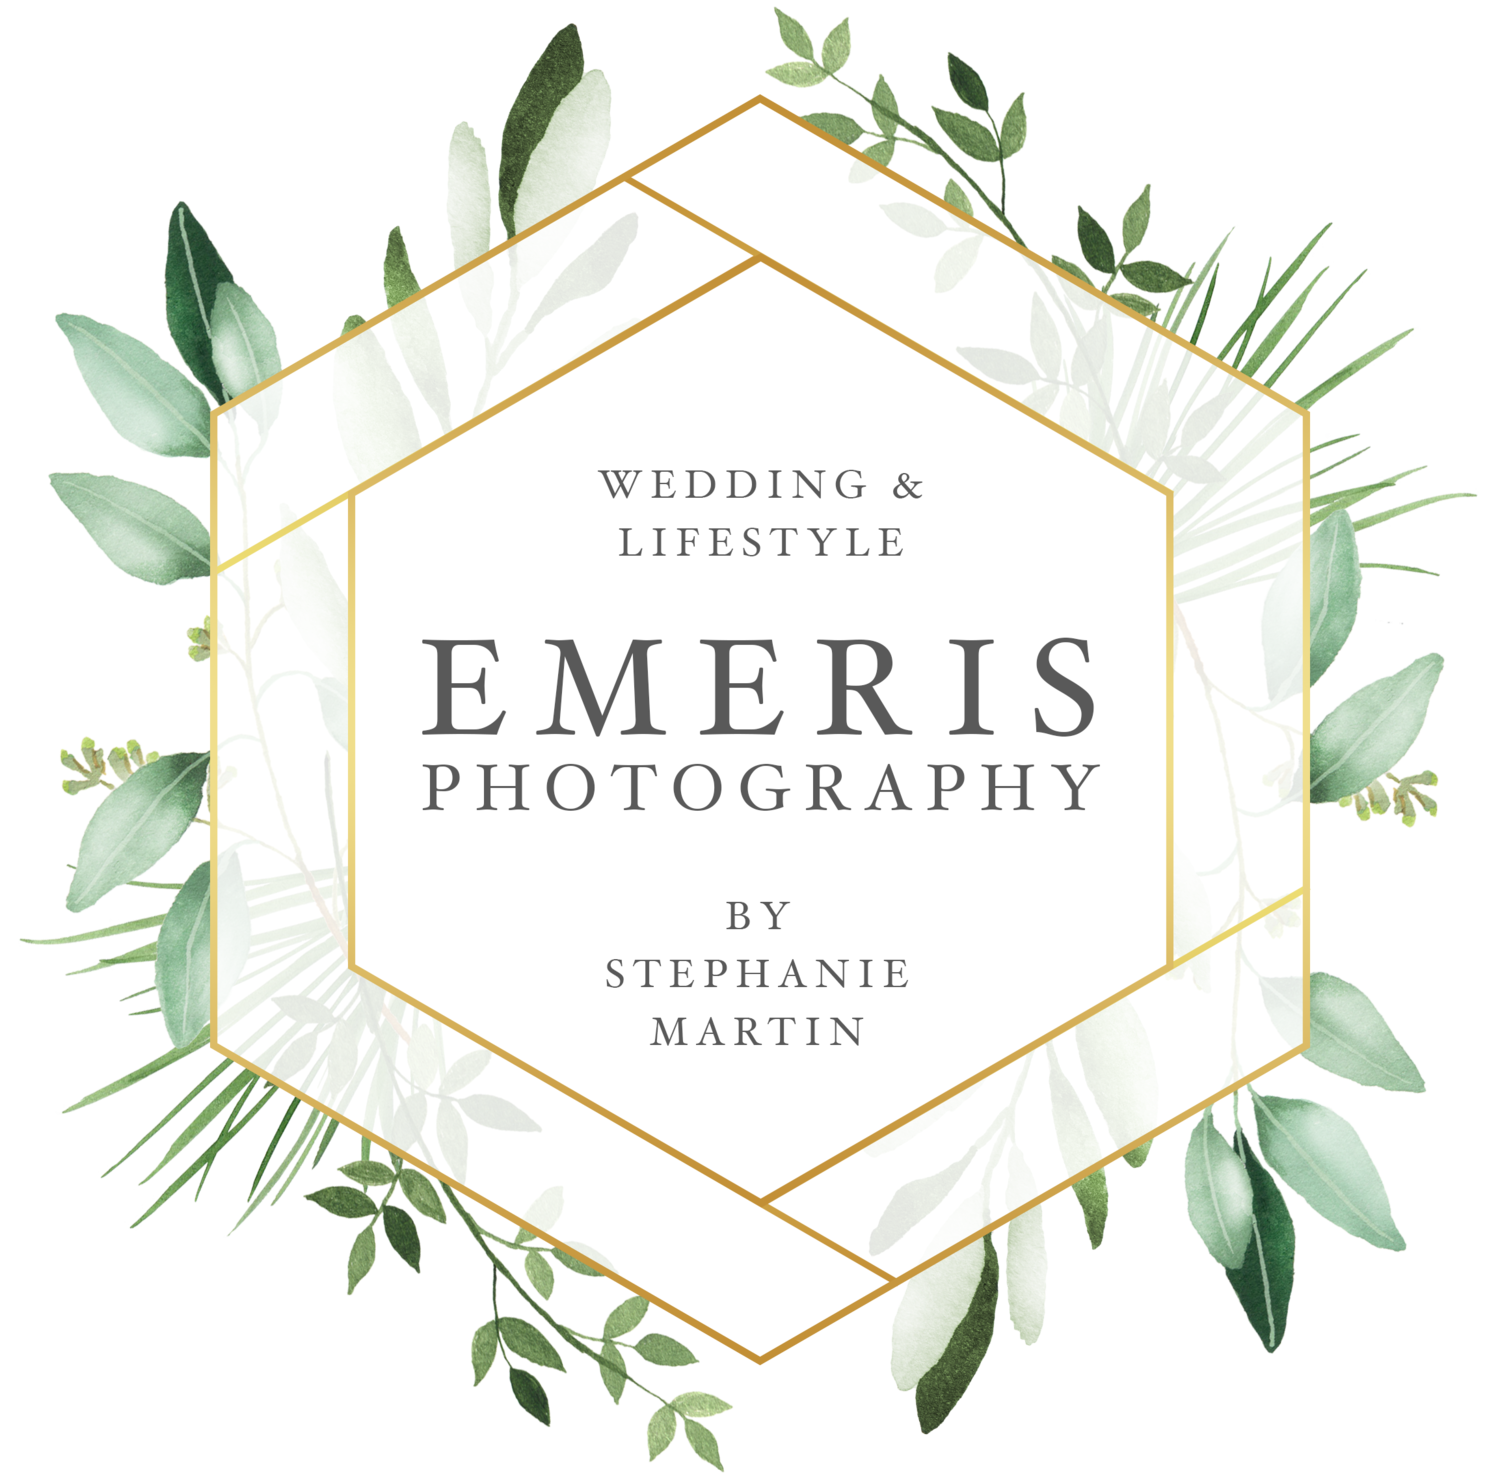 Emeris Photography |  Munich Wedding and Lifestyle Photographer